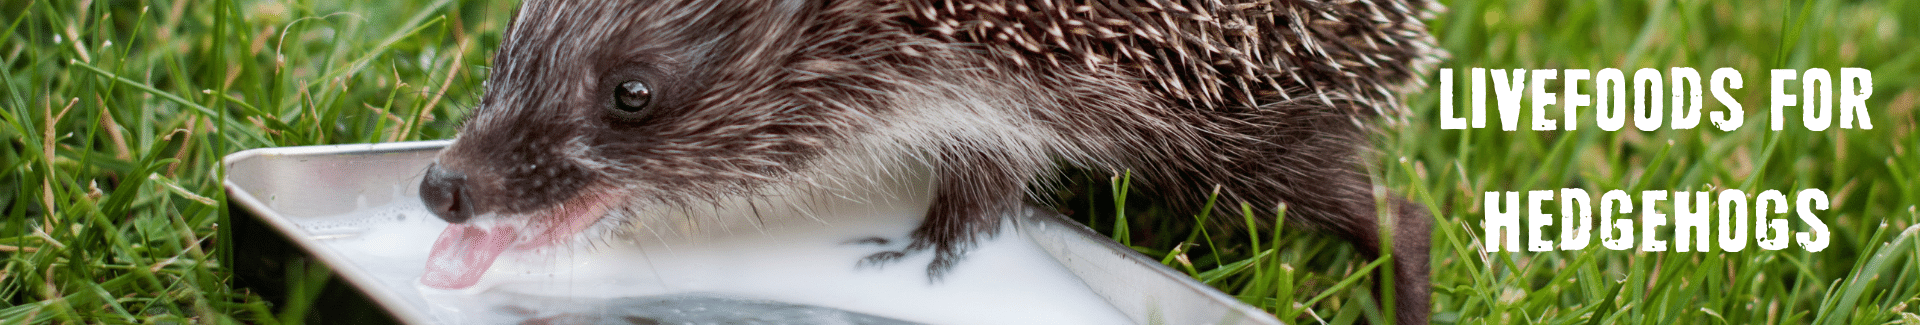 Hedgehog drinking water